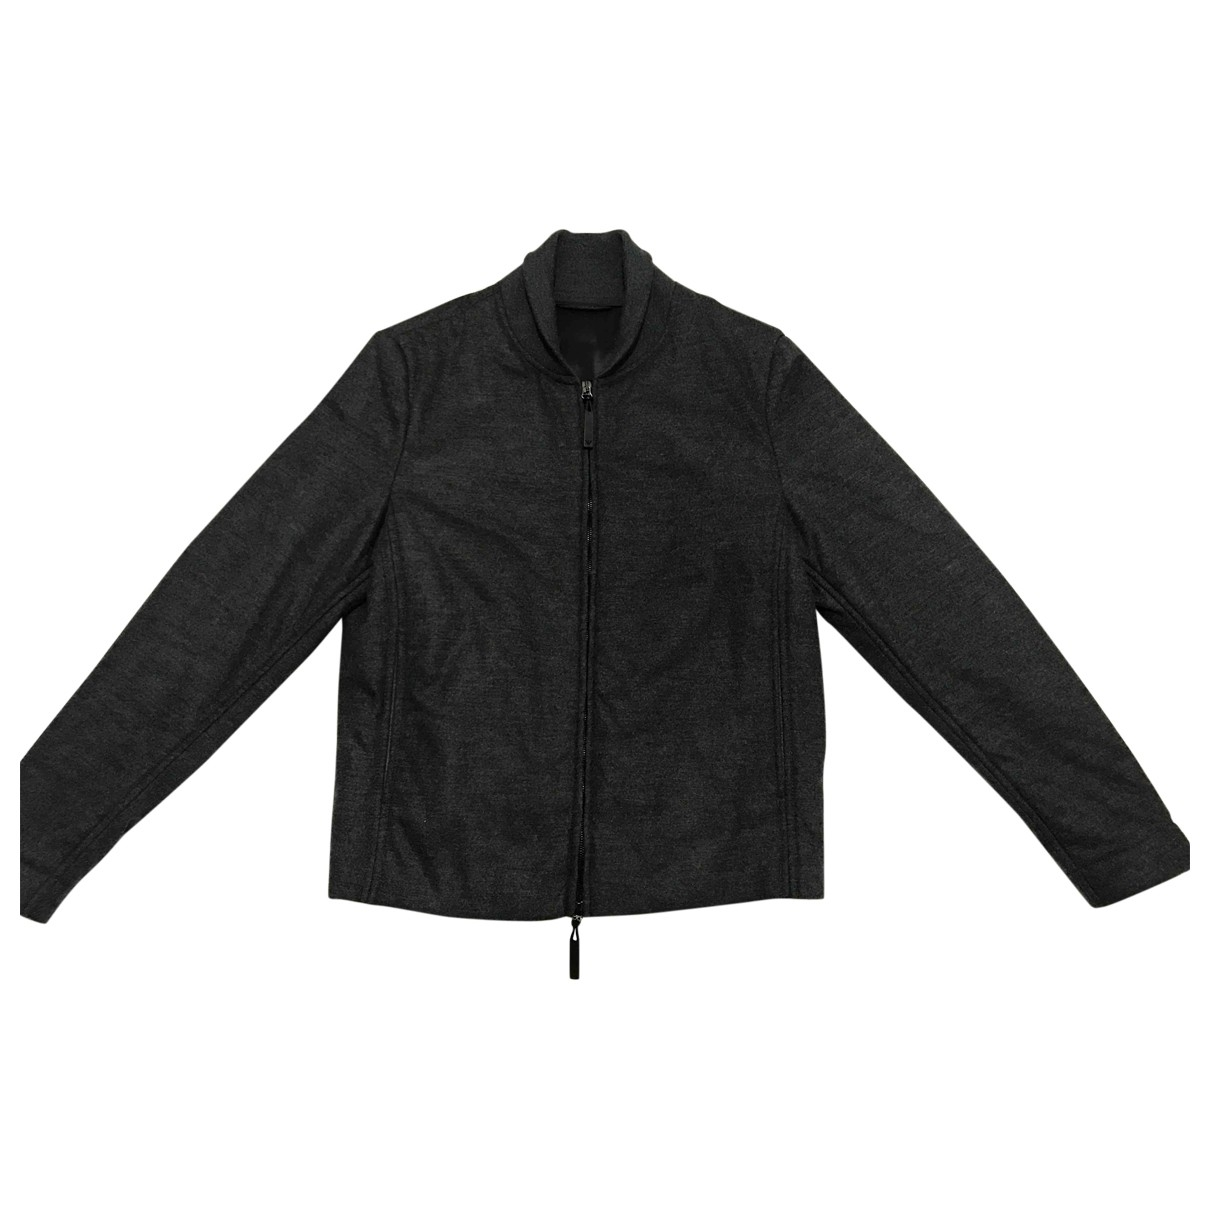 Emporio Armani \N Jacke in  Anthrazit Wolle